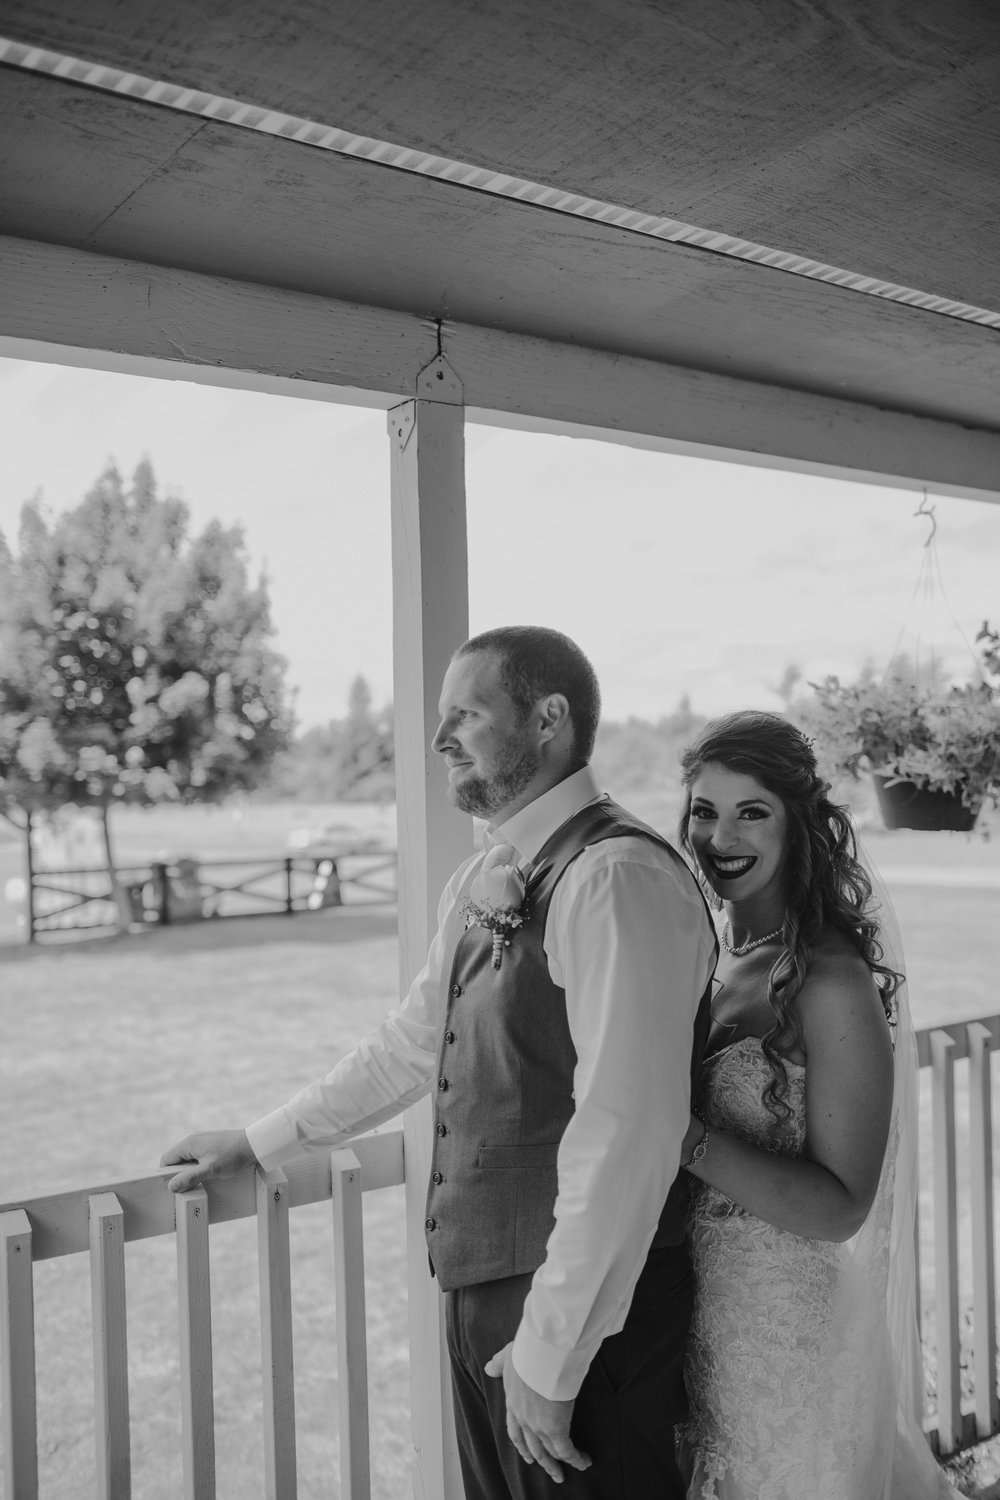 Olympic-Peninsula-Wedding-Photographer-PNW-Forks-Port-Angeles-Kayla-Dawn-Photography-engagement-Olympic-National-Park-157.jpg